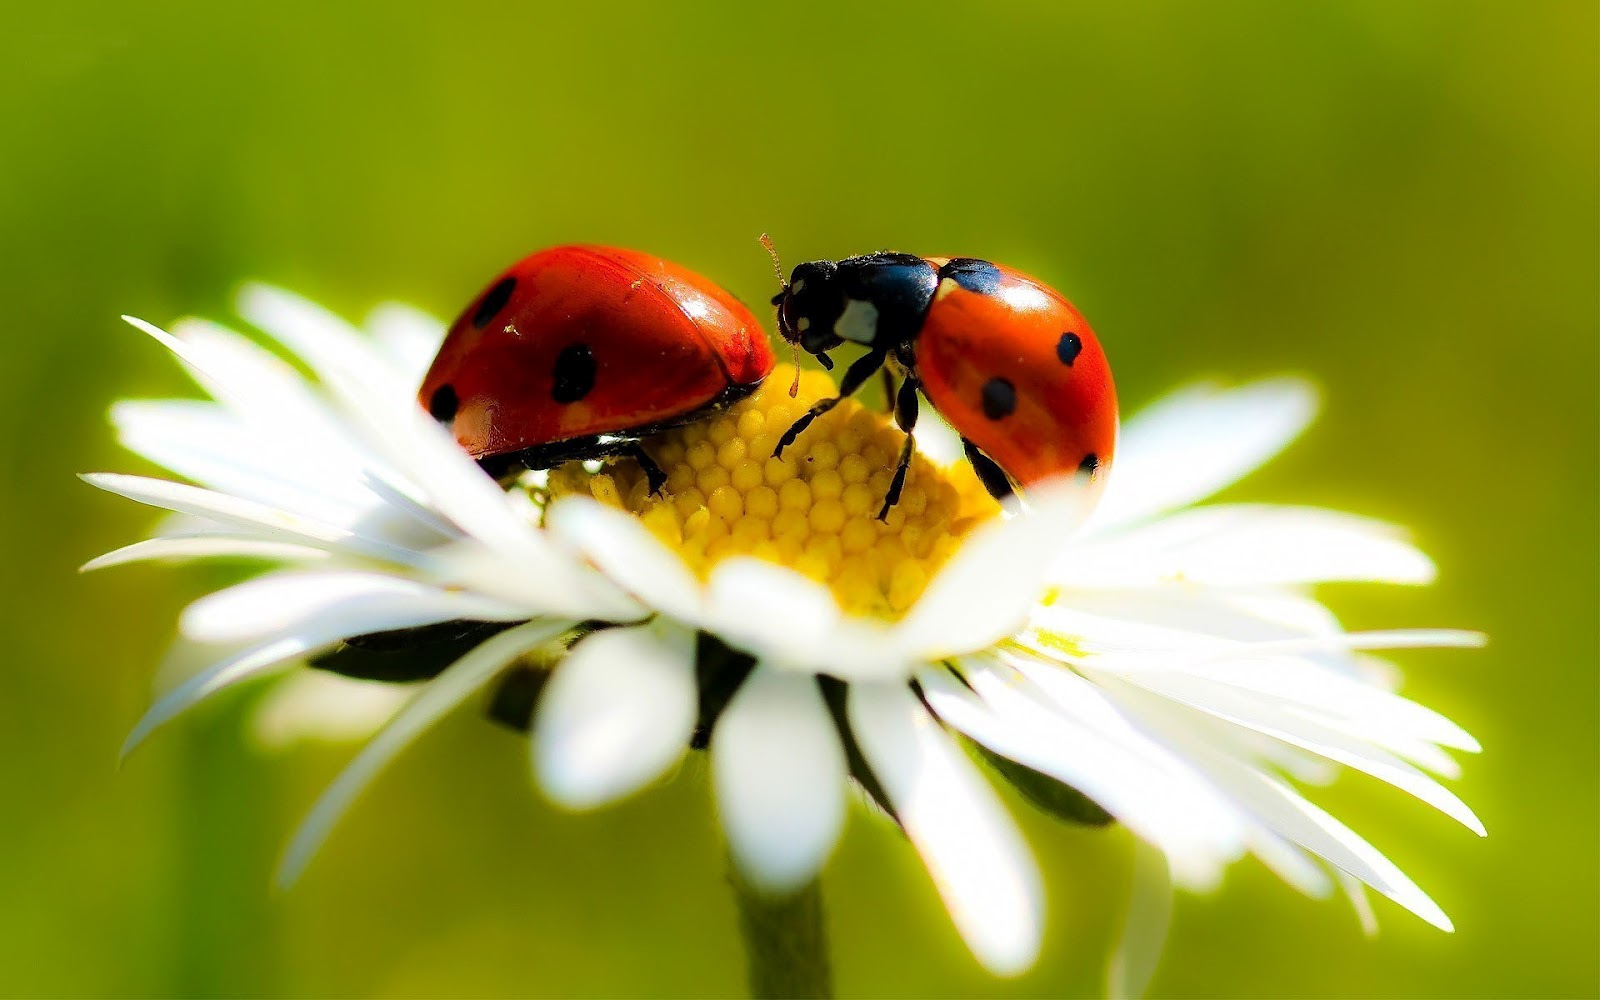 http://4.bp.blogspot.com/-TTw24Y9P5Tc/UDe6GmH77qI/AAAAAAAABAQ/x5x7aF6k61k/s1600/hd-ladybug-wallpaper-with-two-ladybugs-on-a-white-flower-hd-ladybugs-wallpapers-backgrounds-pictures-photos.jpg.jpg